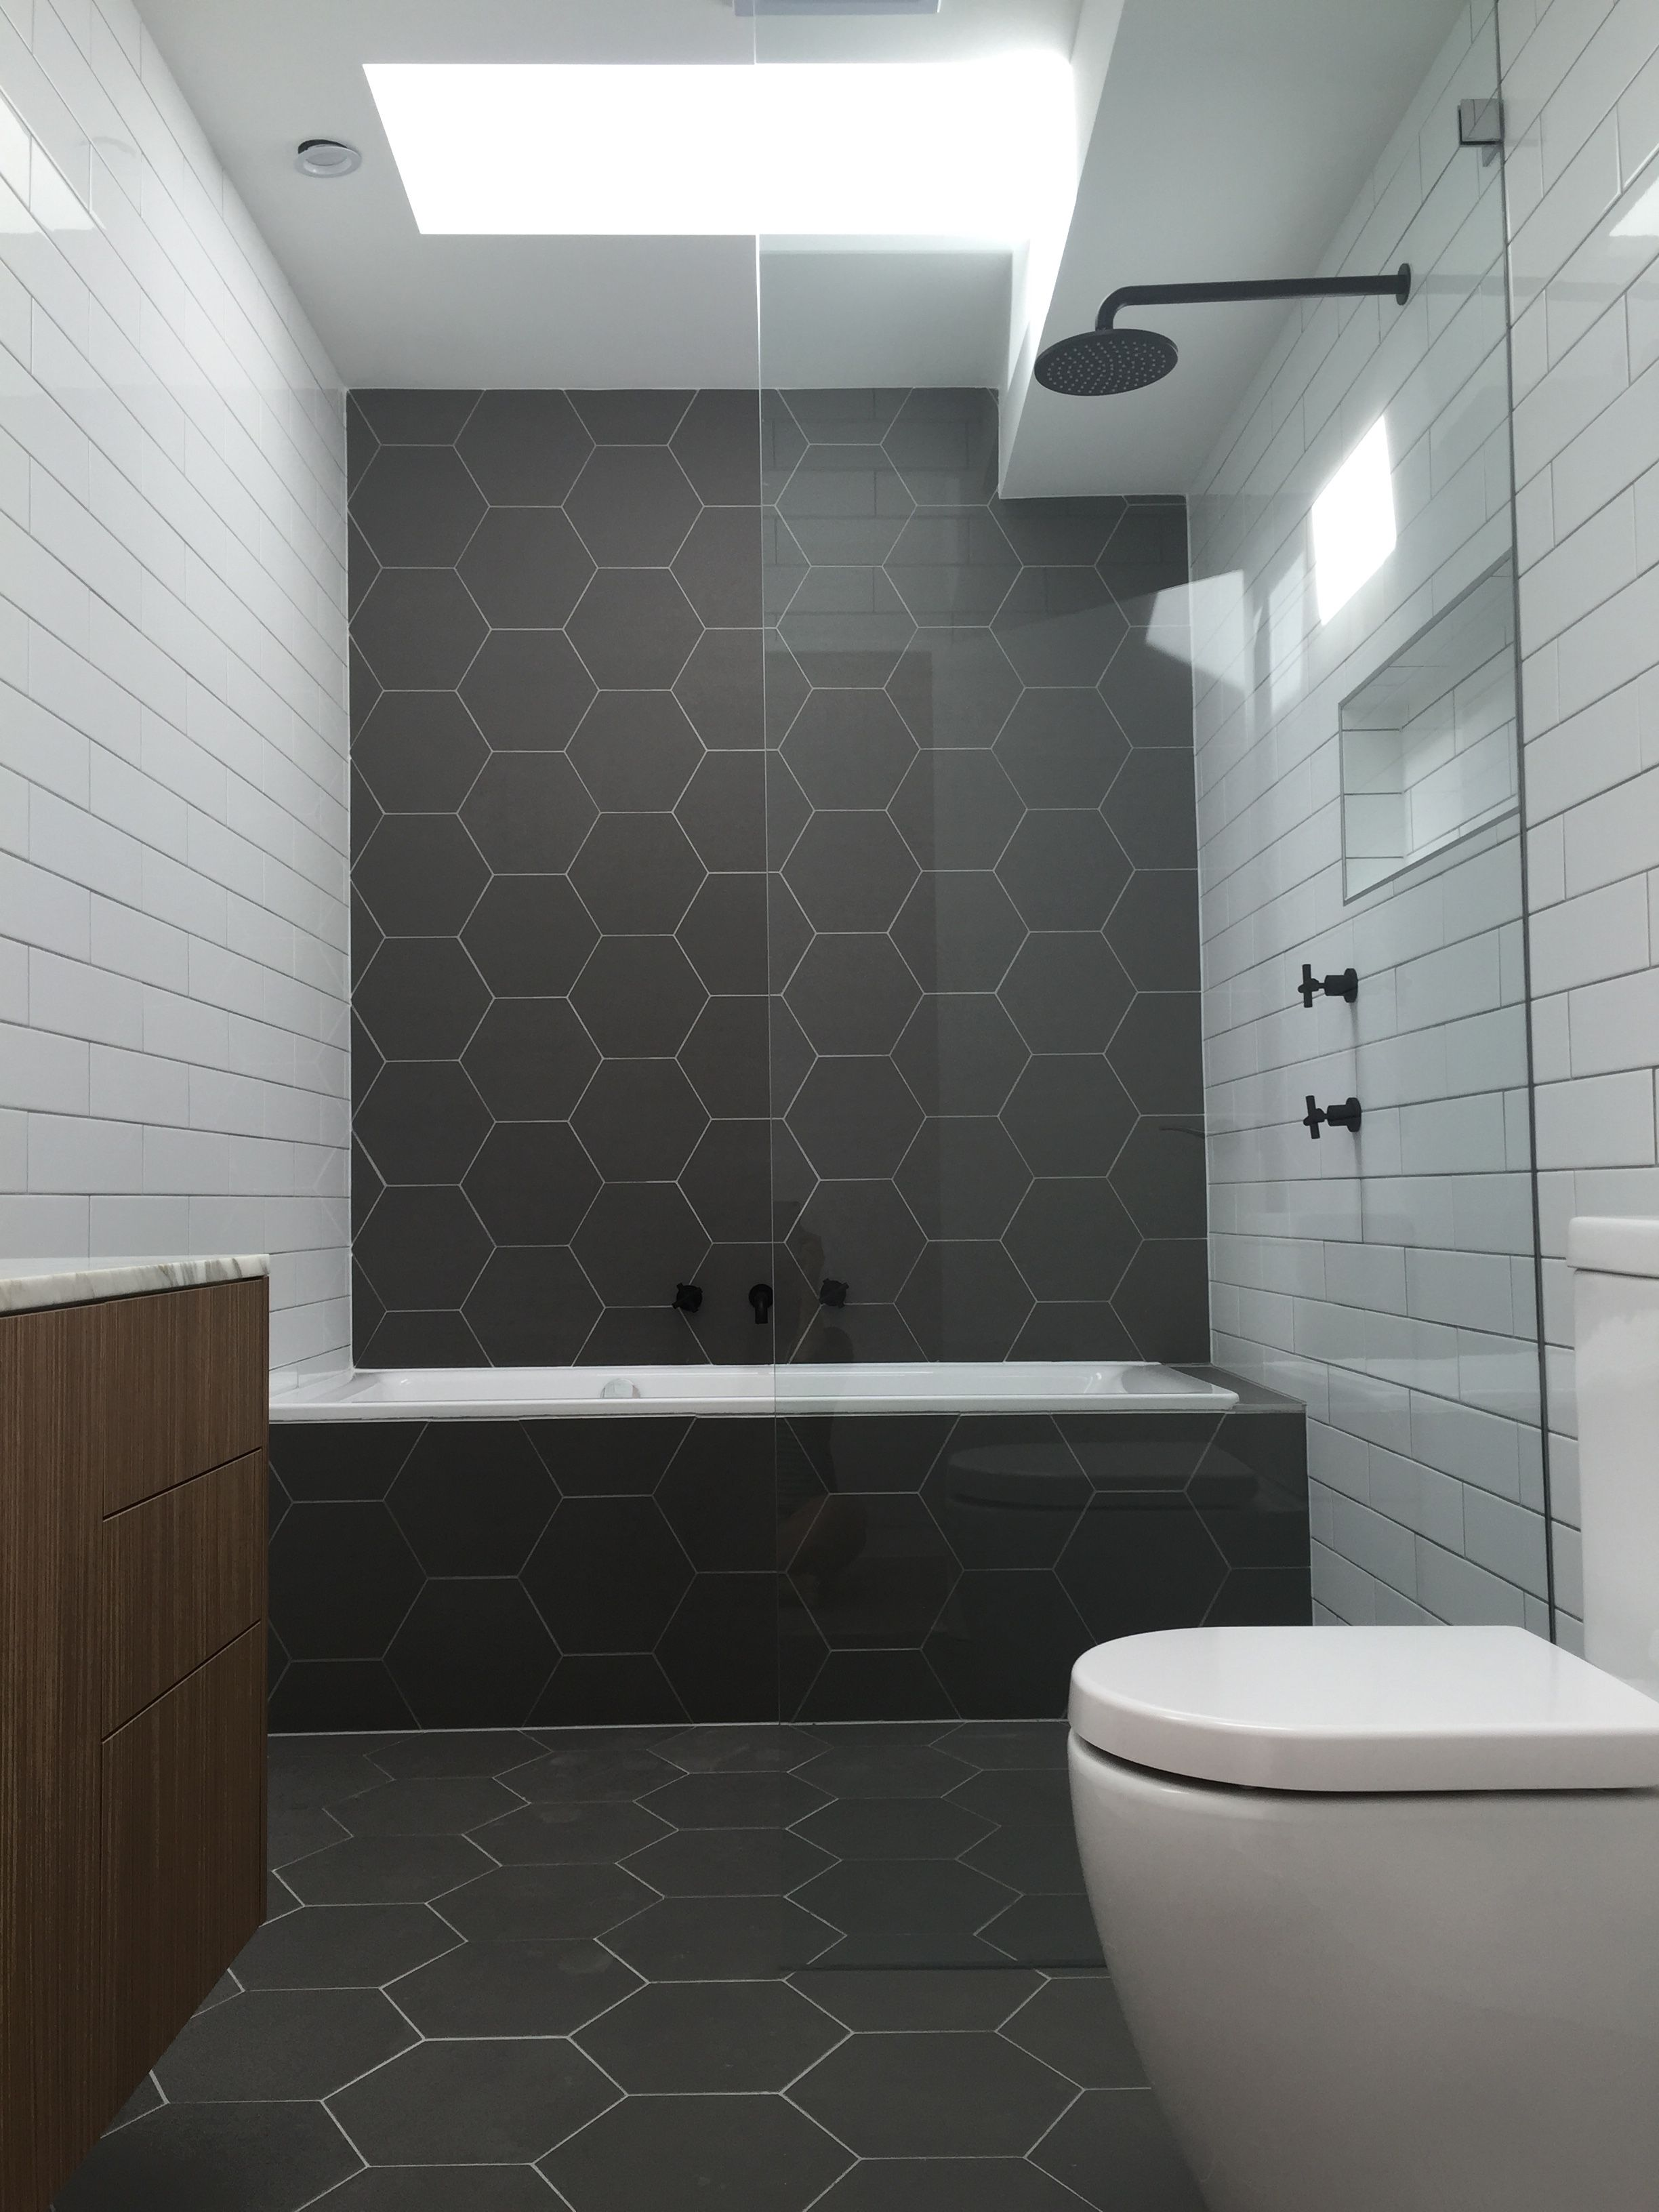 Hexagonal Tiles Monochrome Bathroom Matt Black Fittings Natural